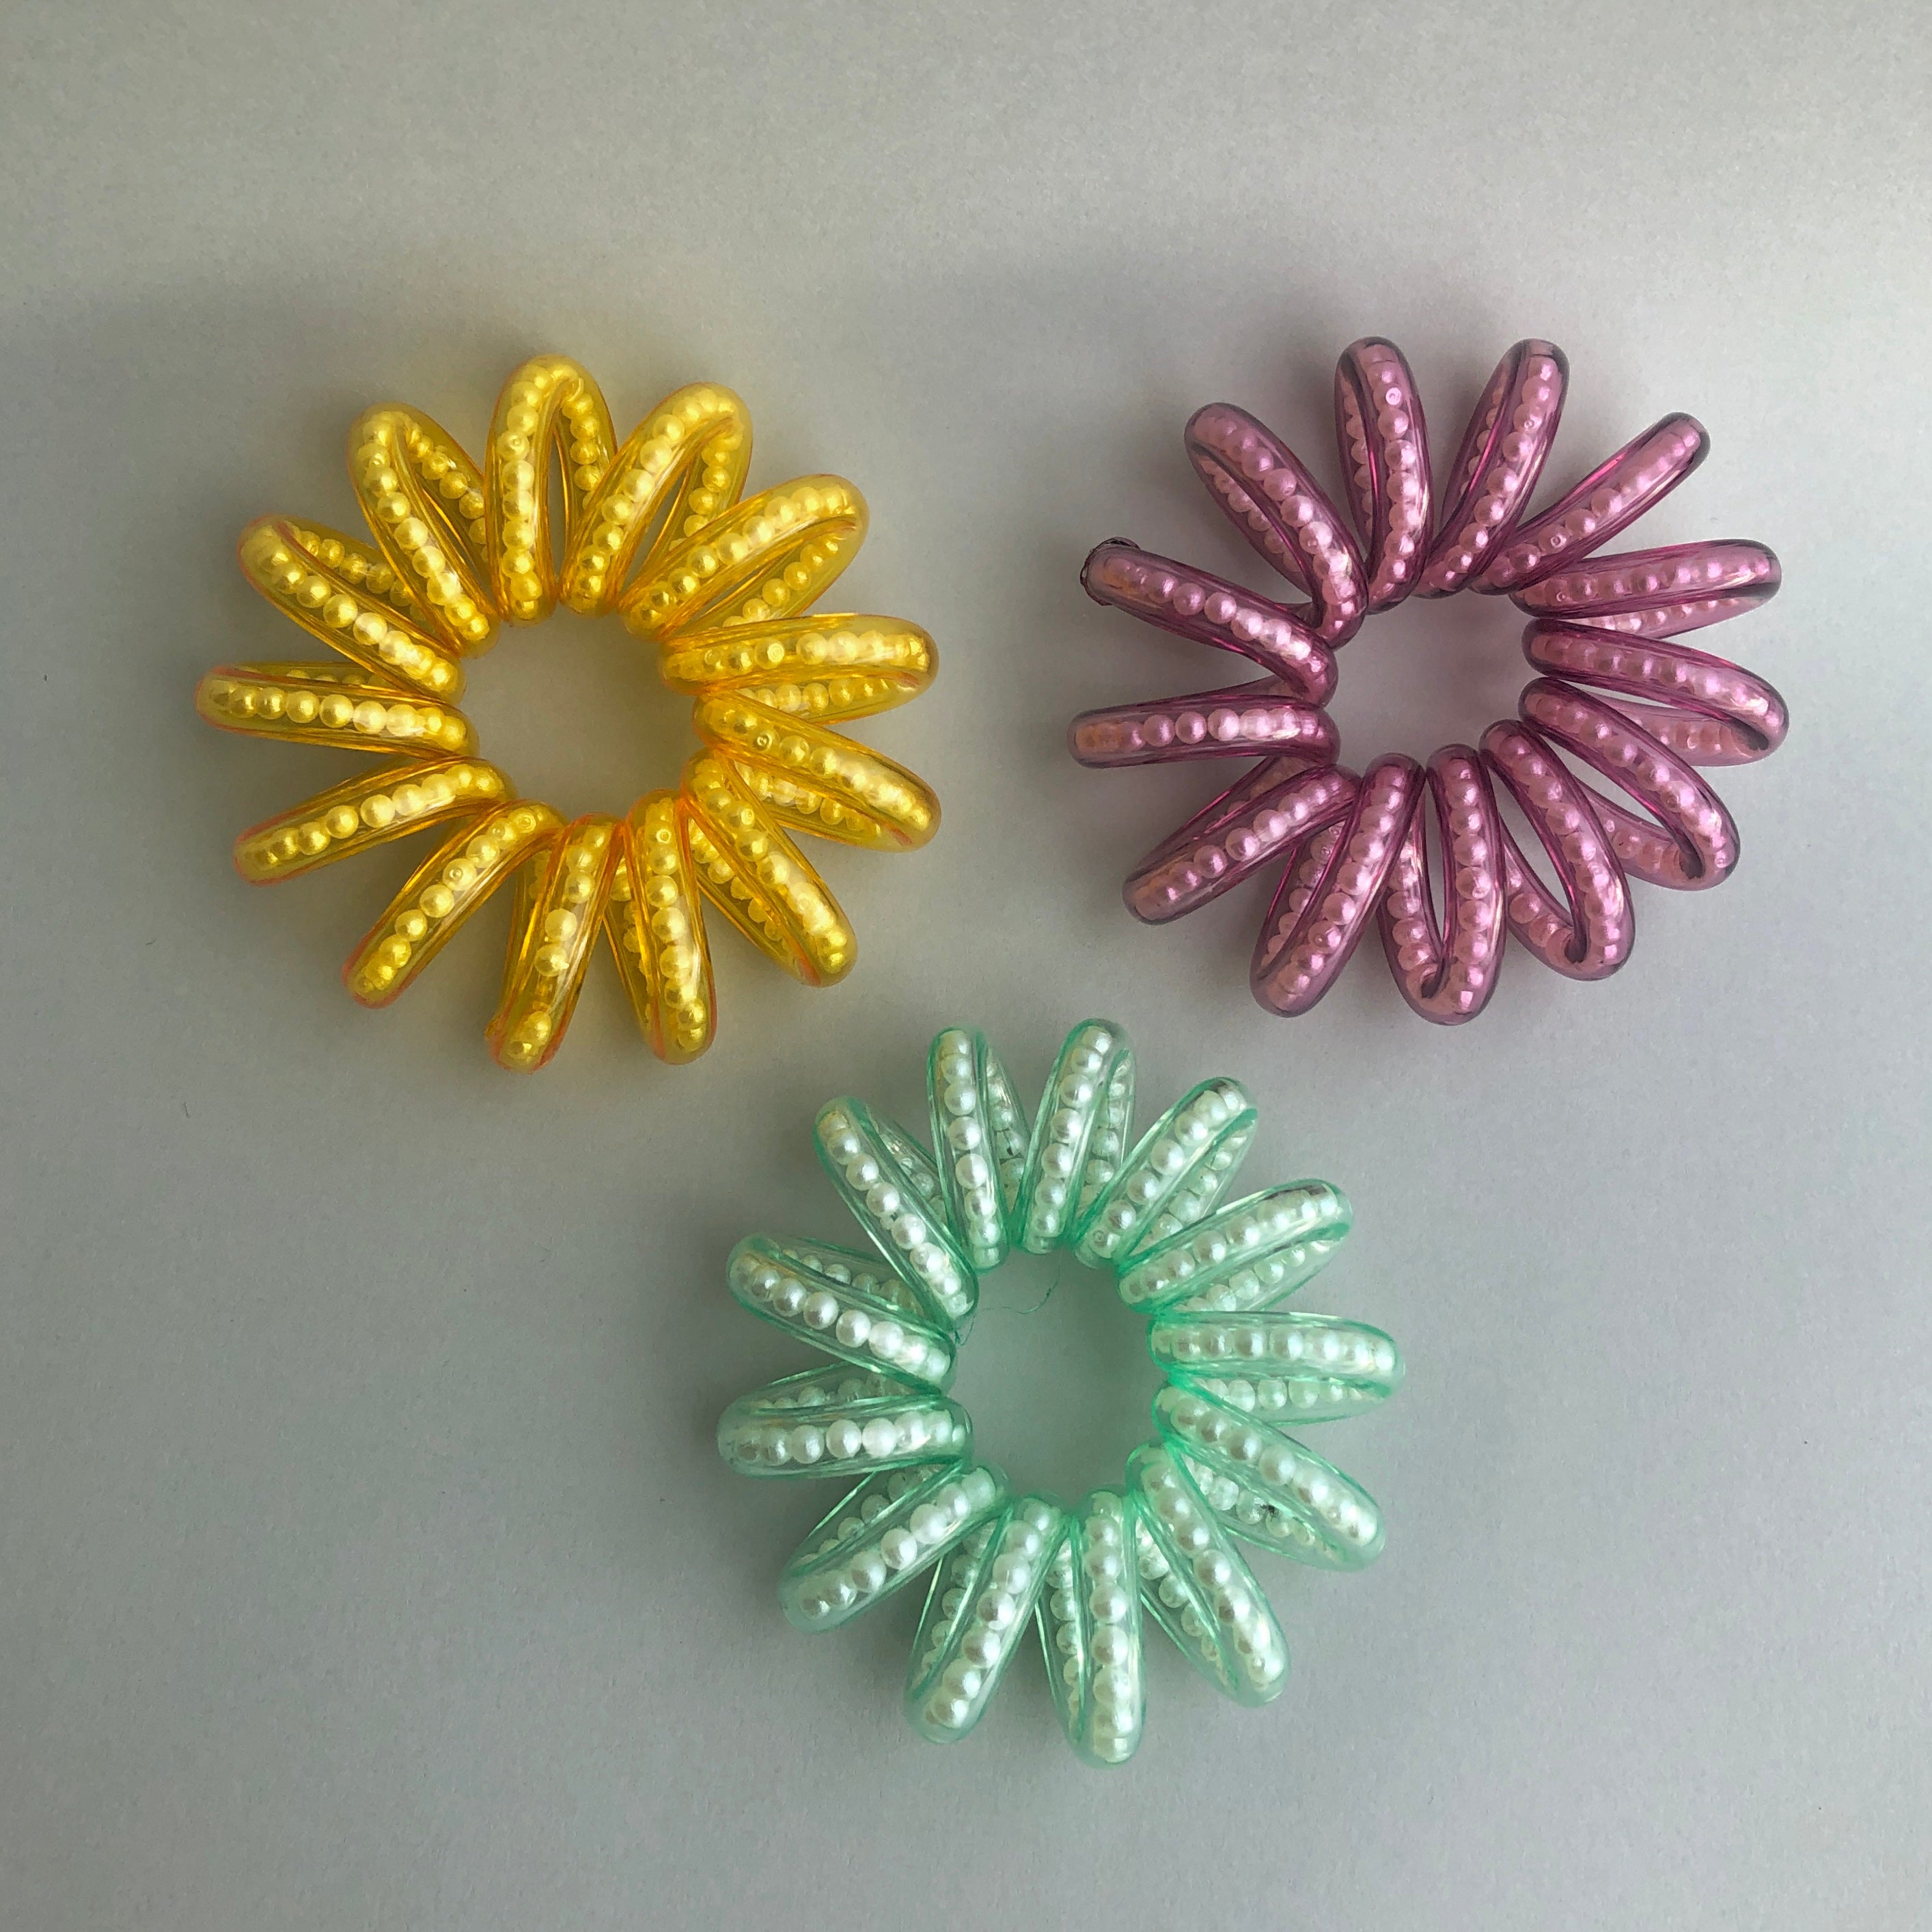 Beaded Phonecord Hairties by Veronique